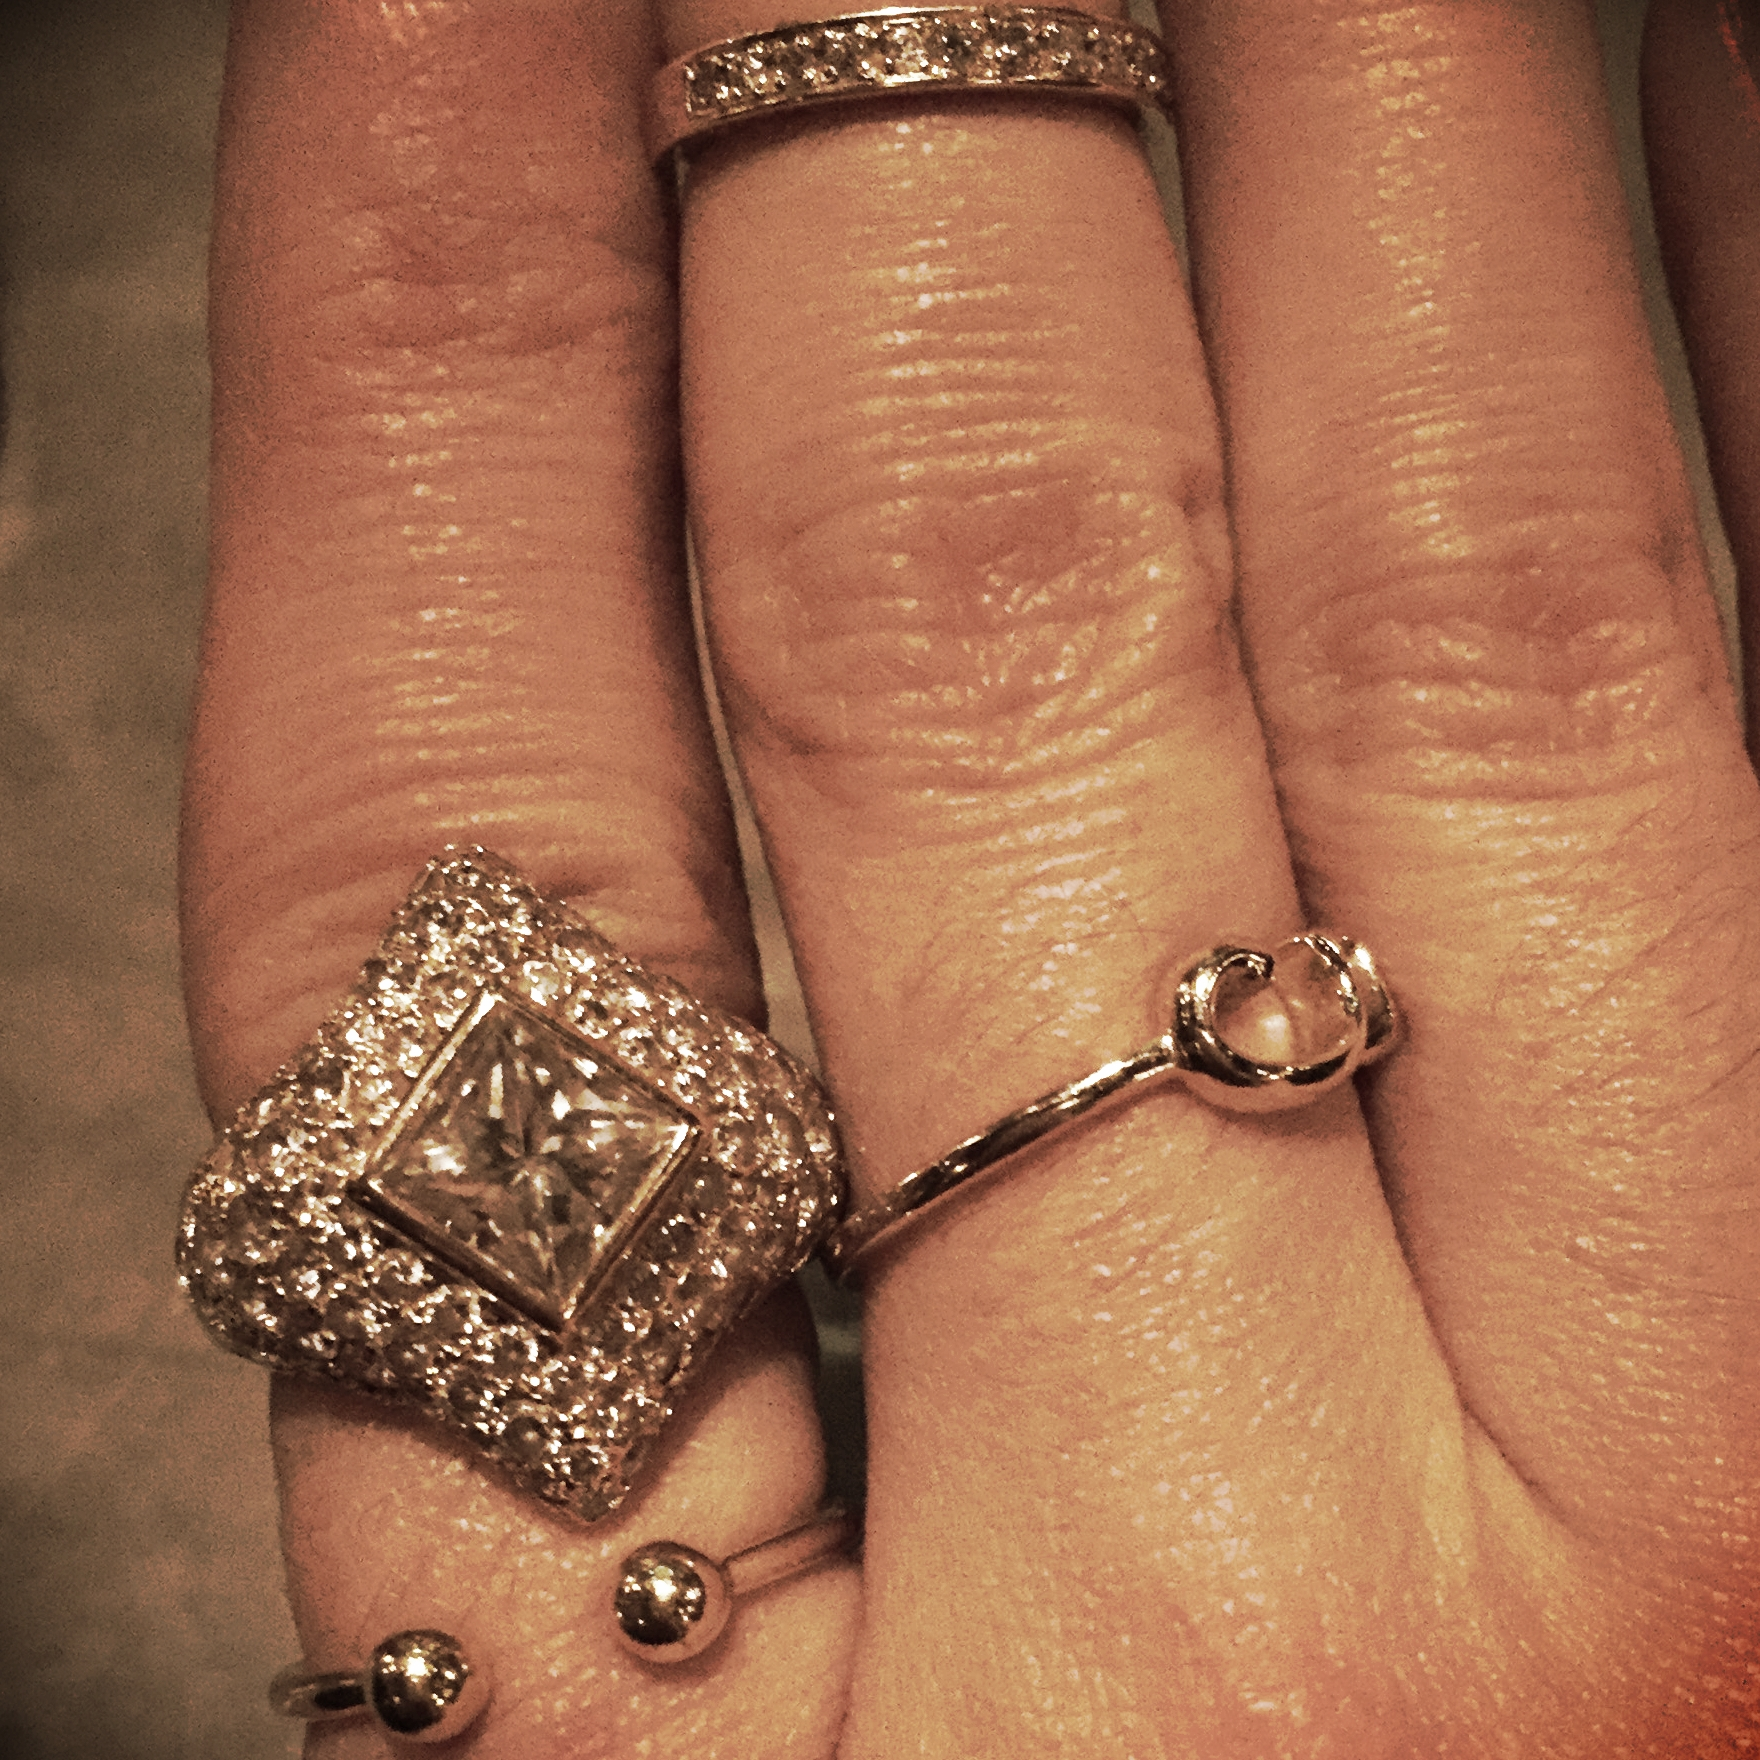 A closer look at Andrea's engagement ring and my knuckle hair.